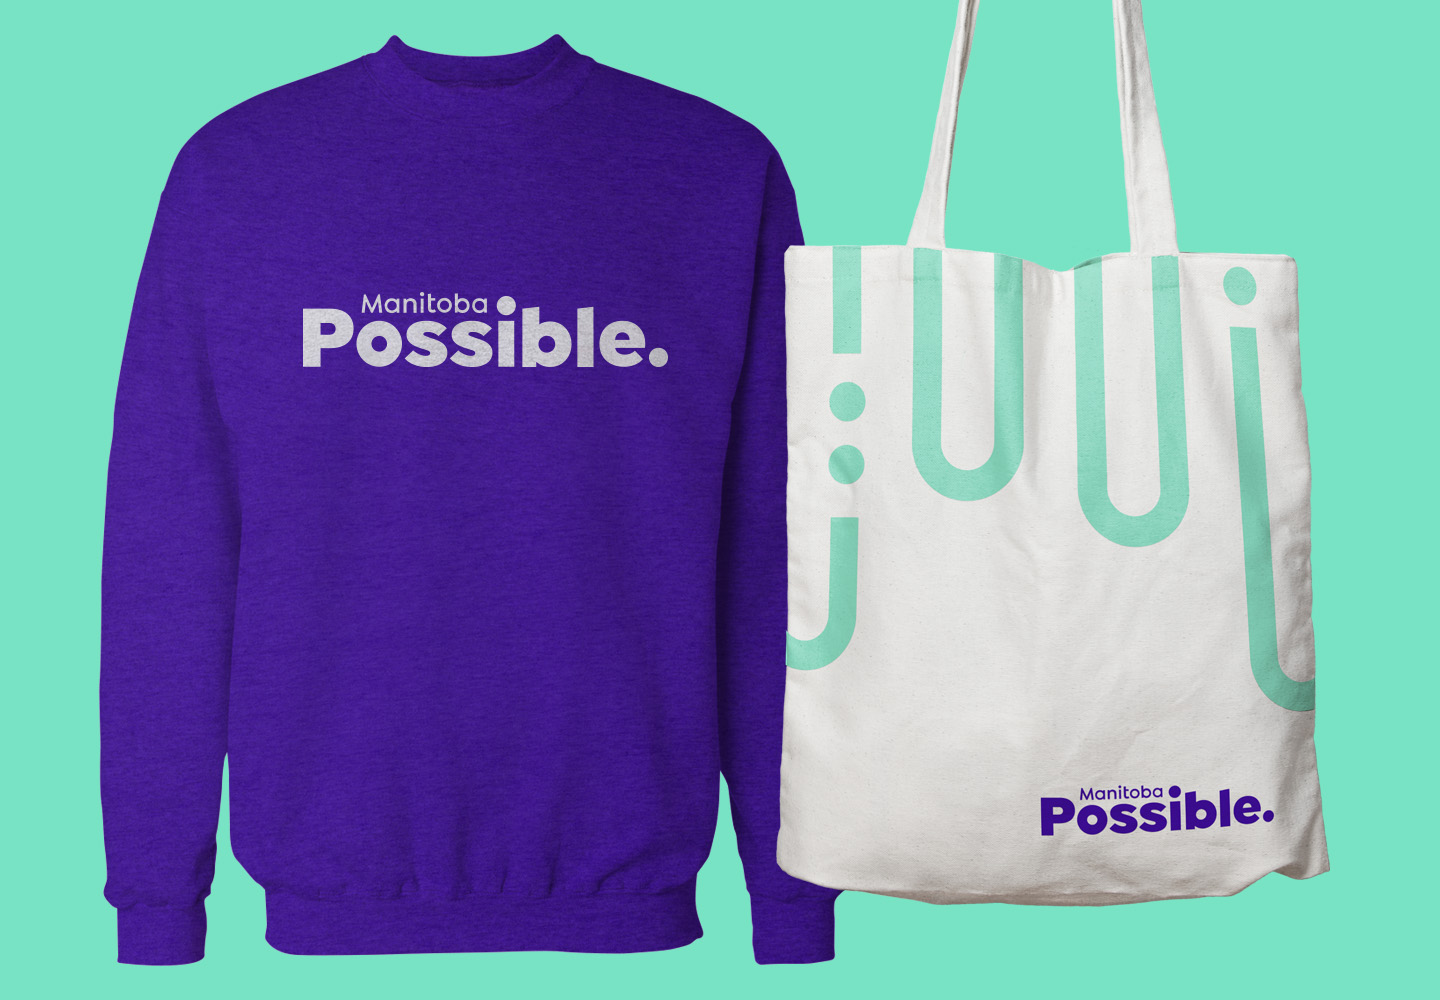 Manitoba Possible purple sweatshirt example and tote bag with the Manitoba Possible motif.